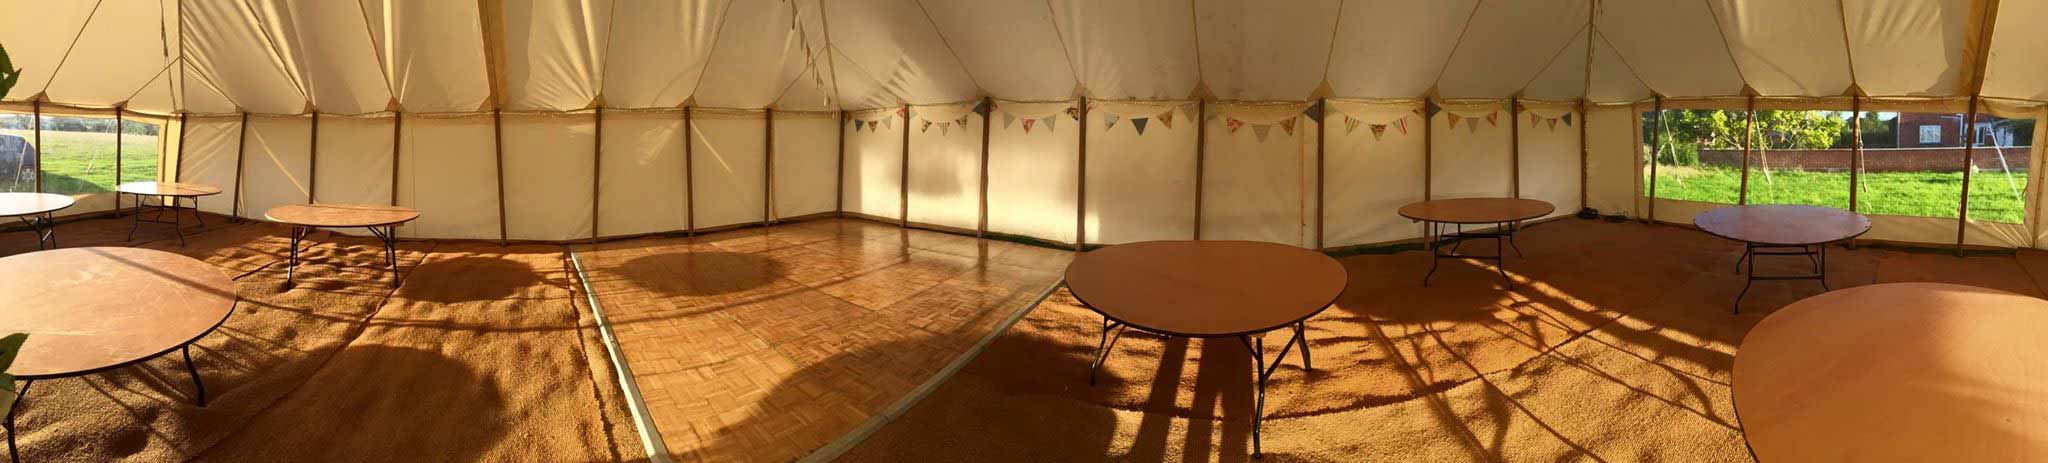 12 x 12m traditional marquee honeycomb marquees for 12 by 12 dance floor